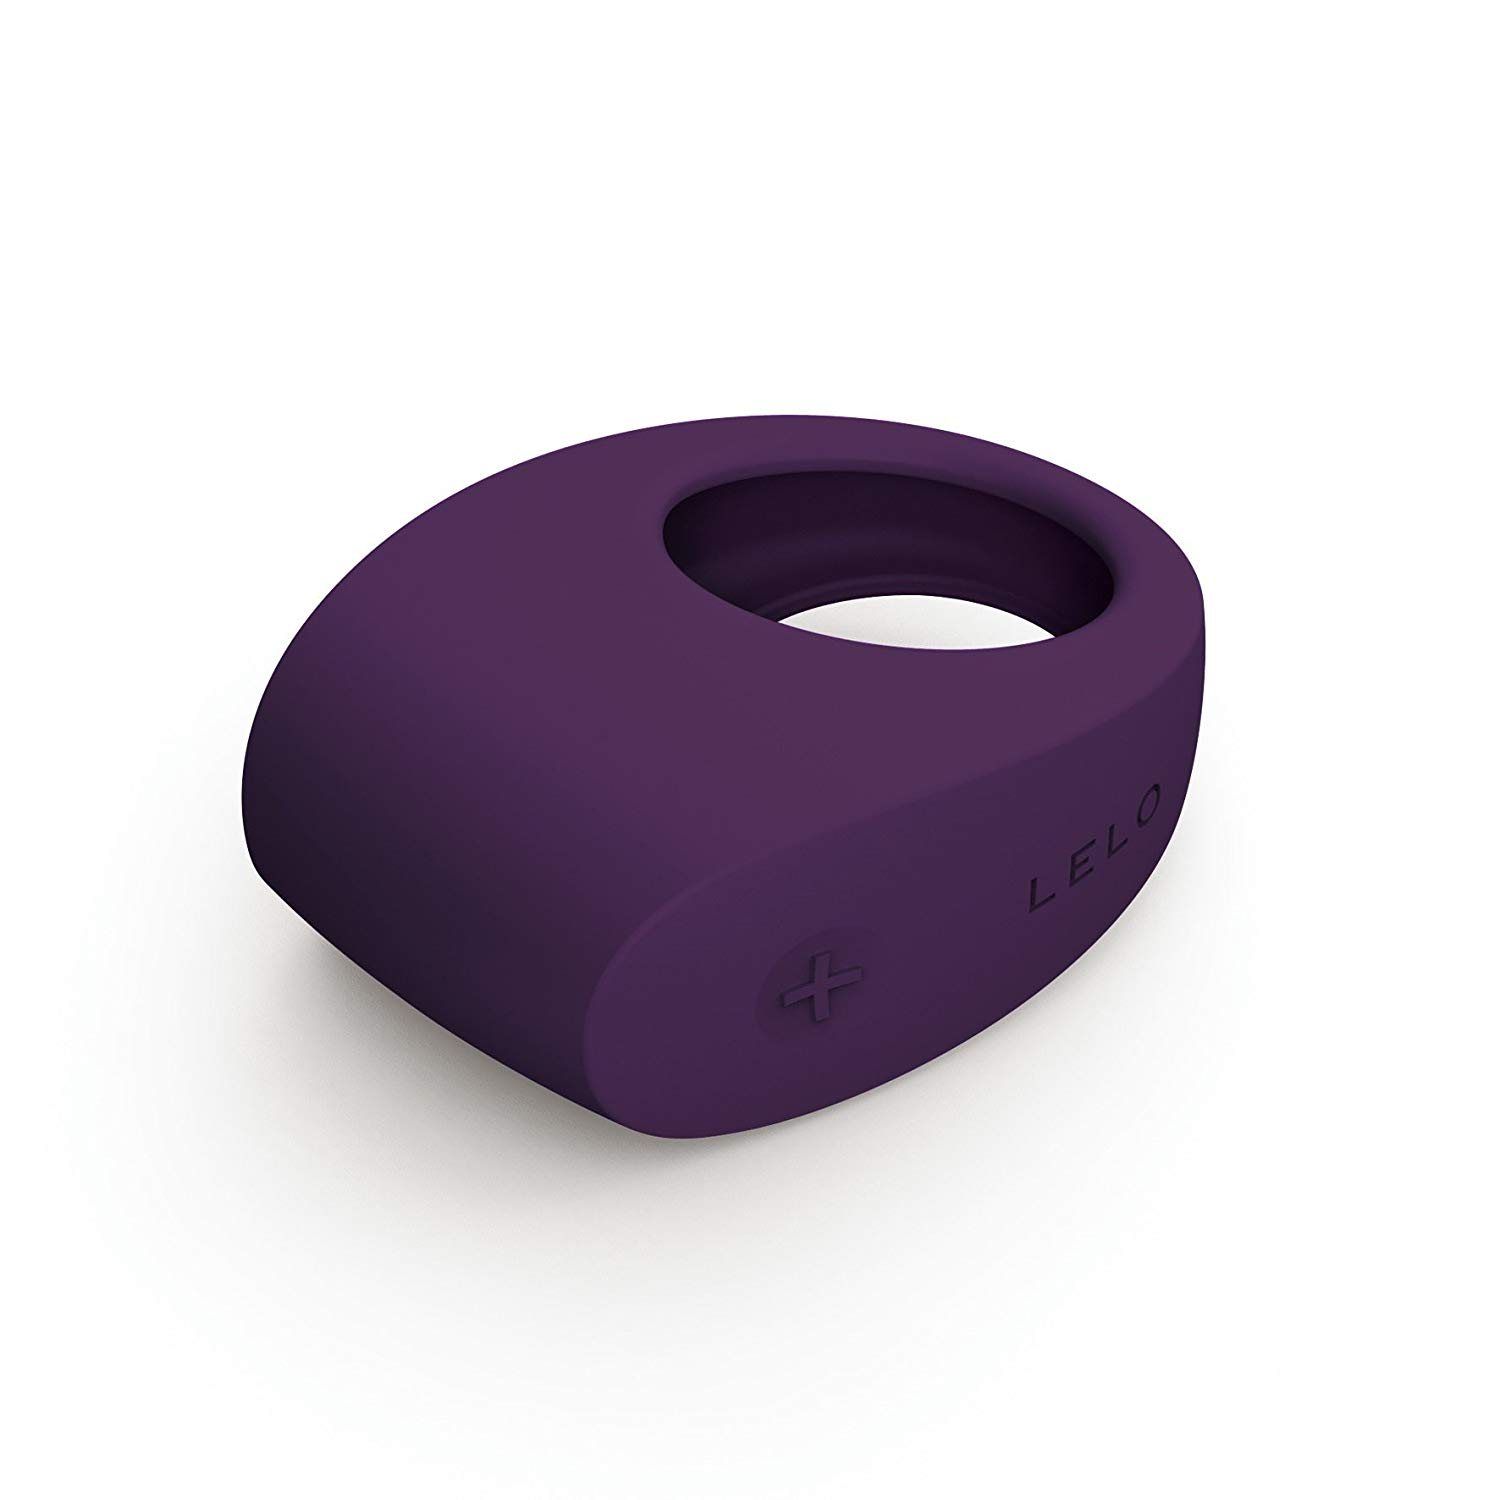 LELO Tor 2 Couples' Vibrating Ring - Best Valentine's Day gifts for him